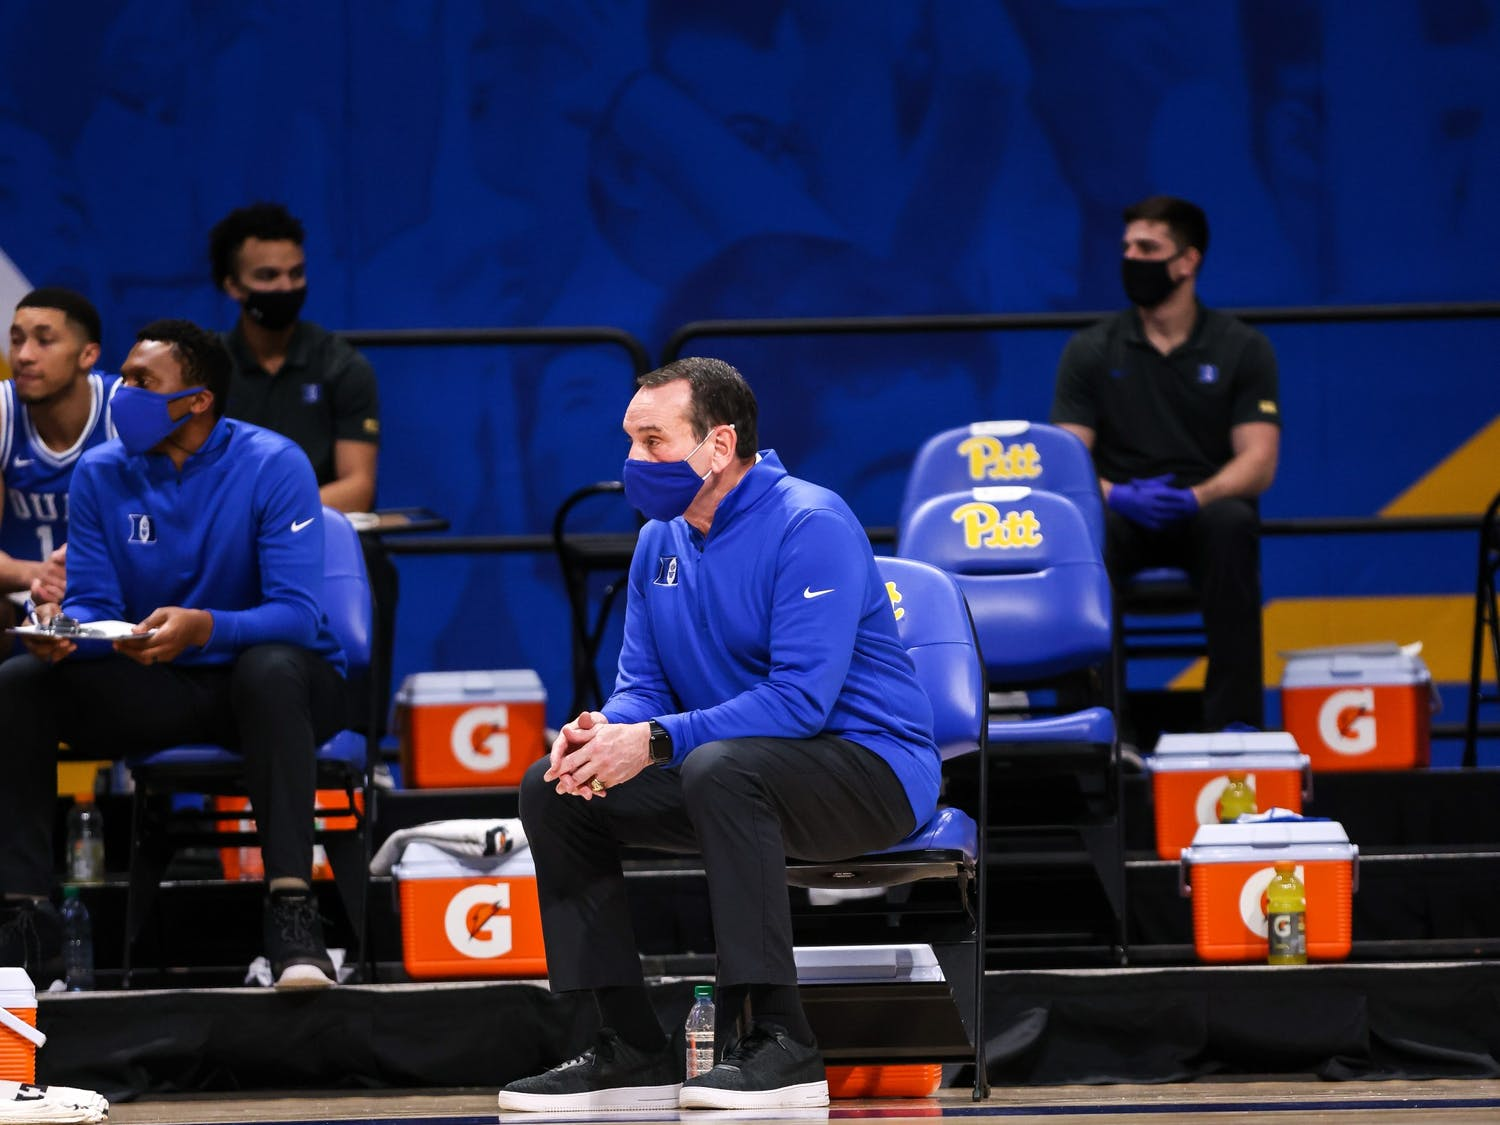 Coach K watches on during Duke's loss at Pittsburgh Tuesday, the team's second loss in a row.